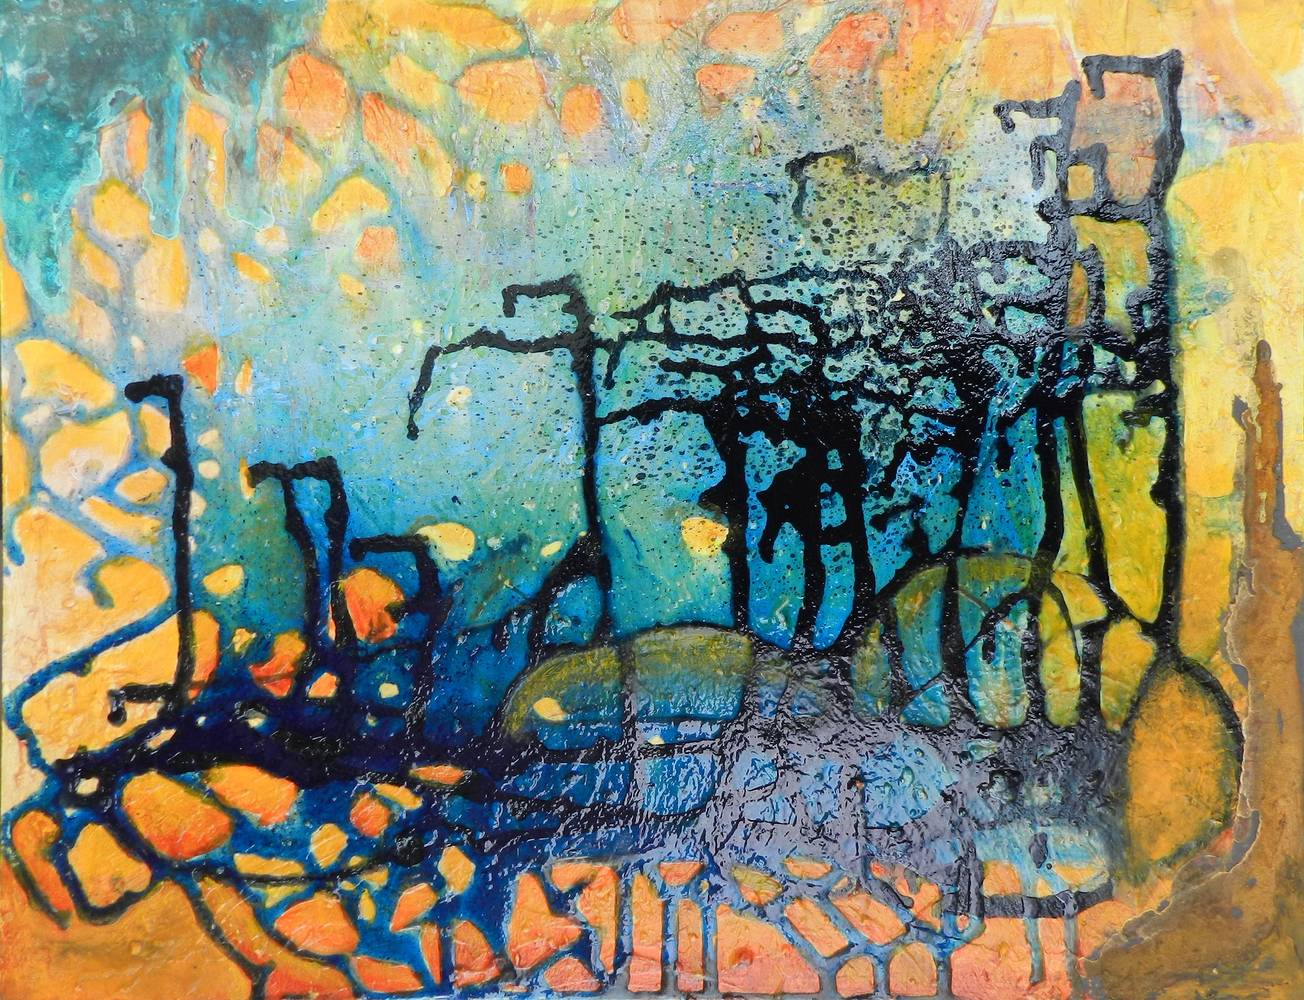 Mixed-media artwork Syncronicity by Karen Holland